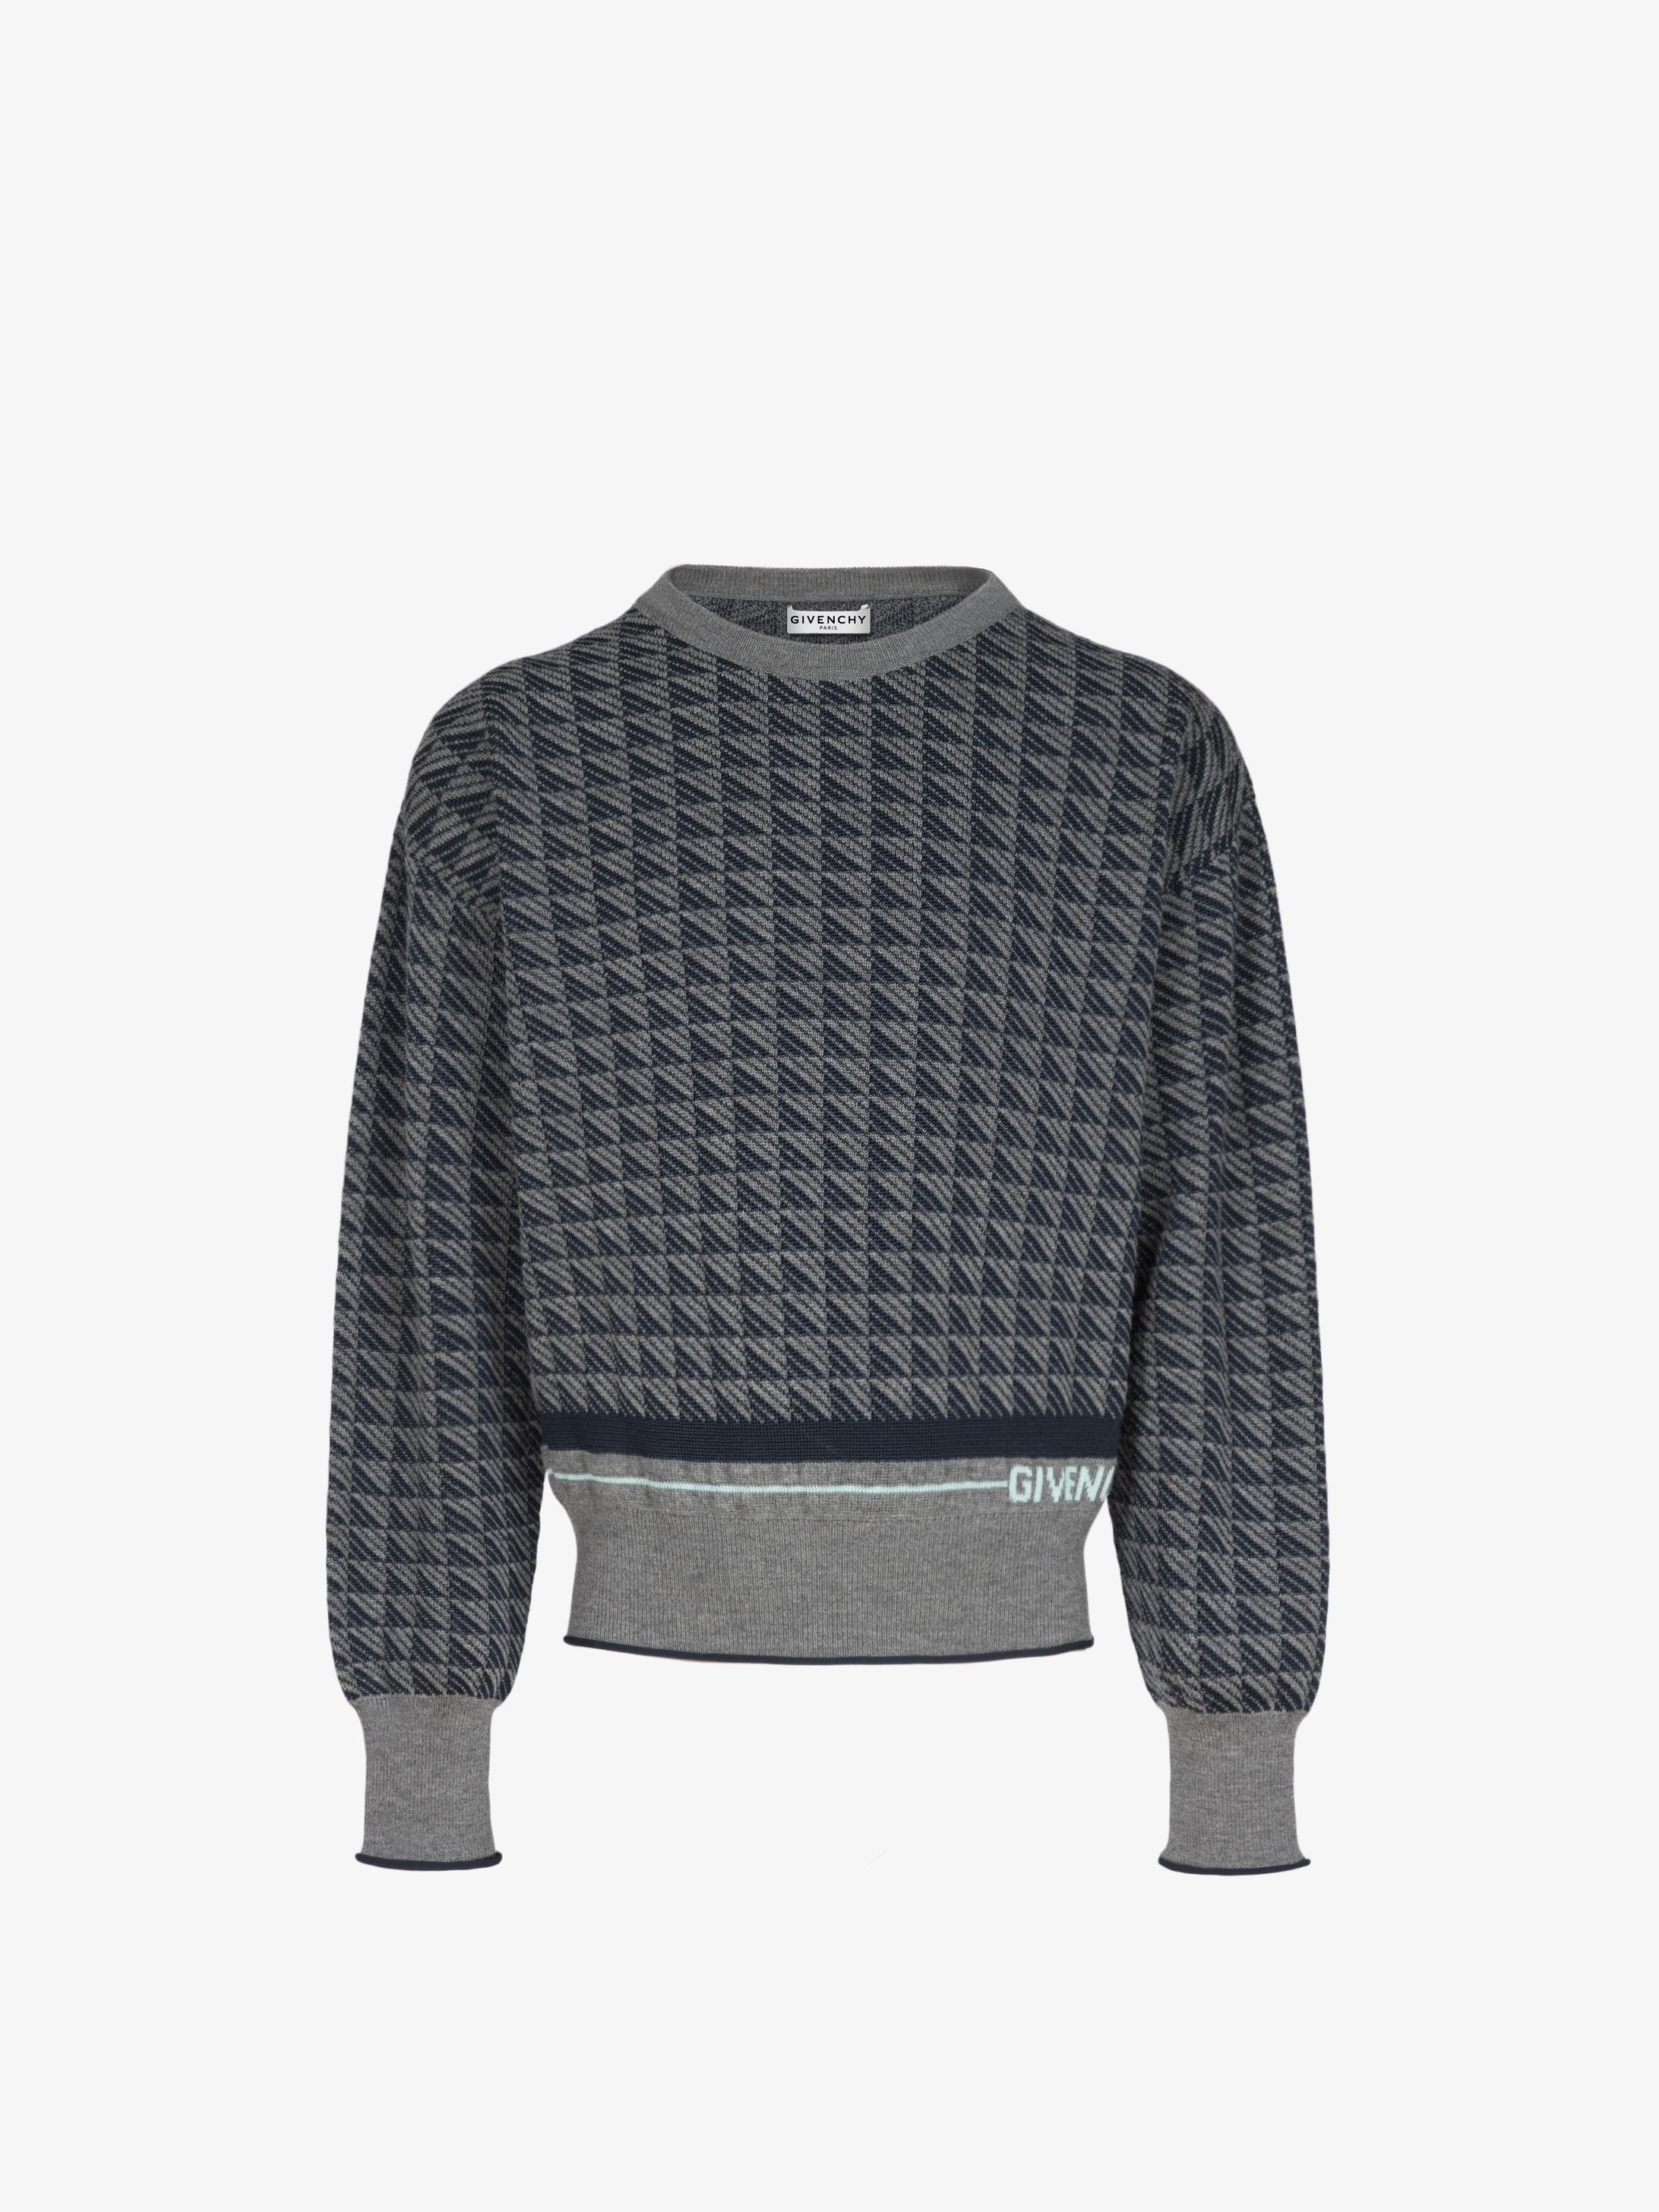 GIVENCHY sweater with pattern